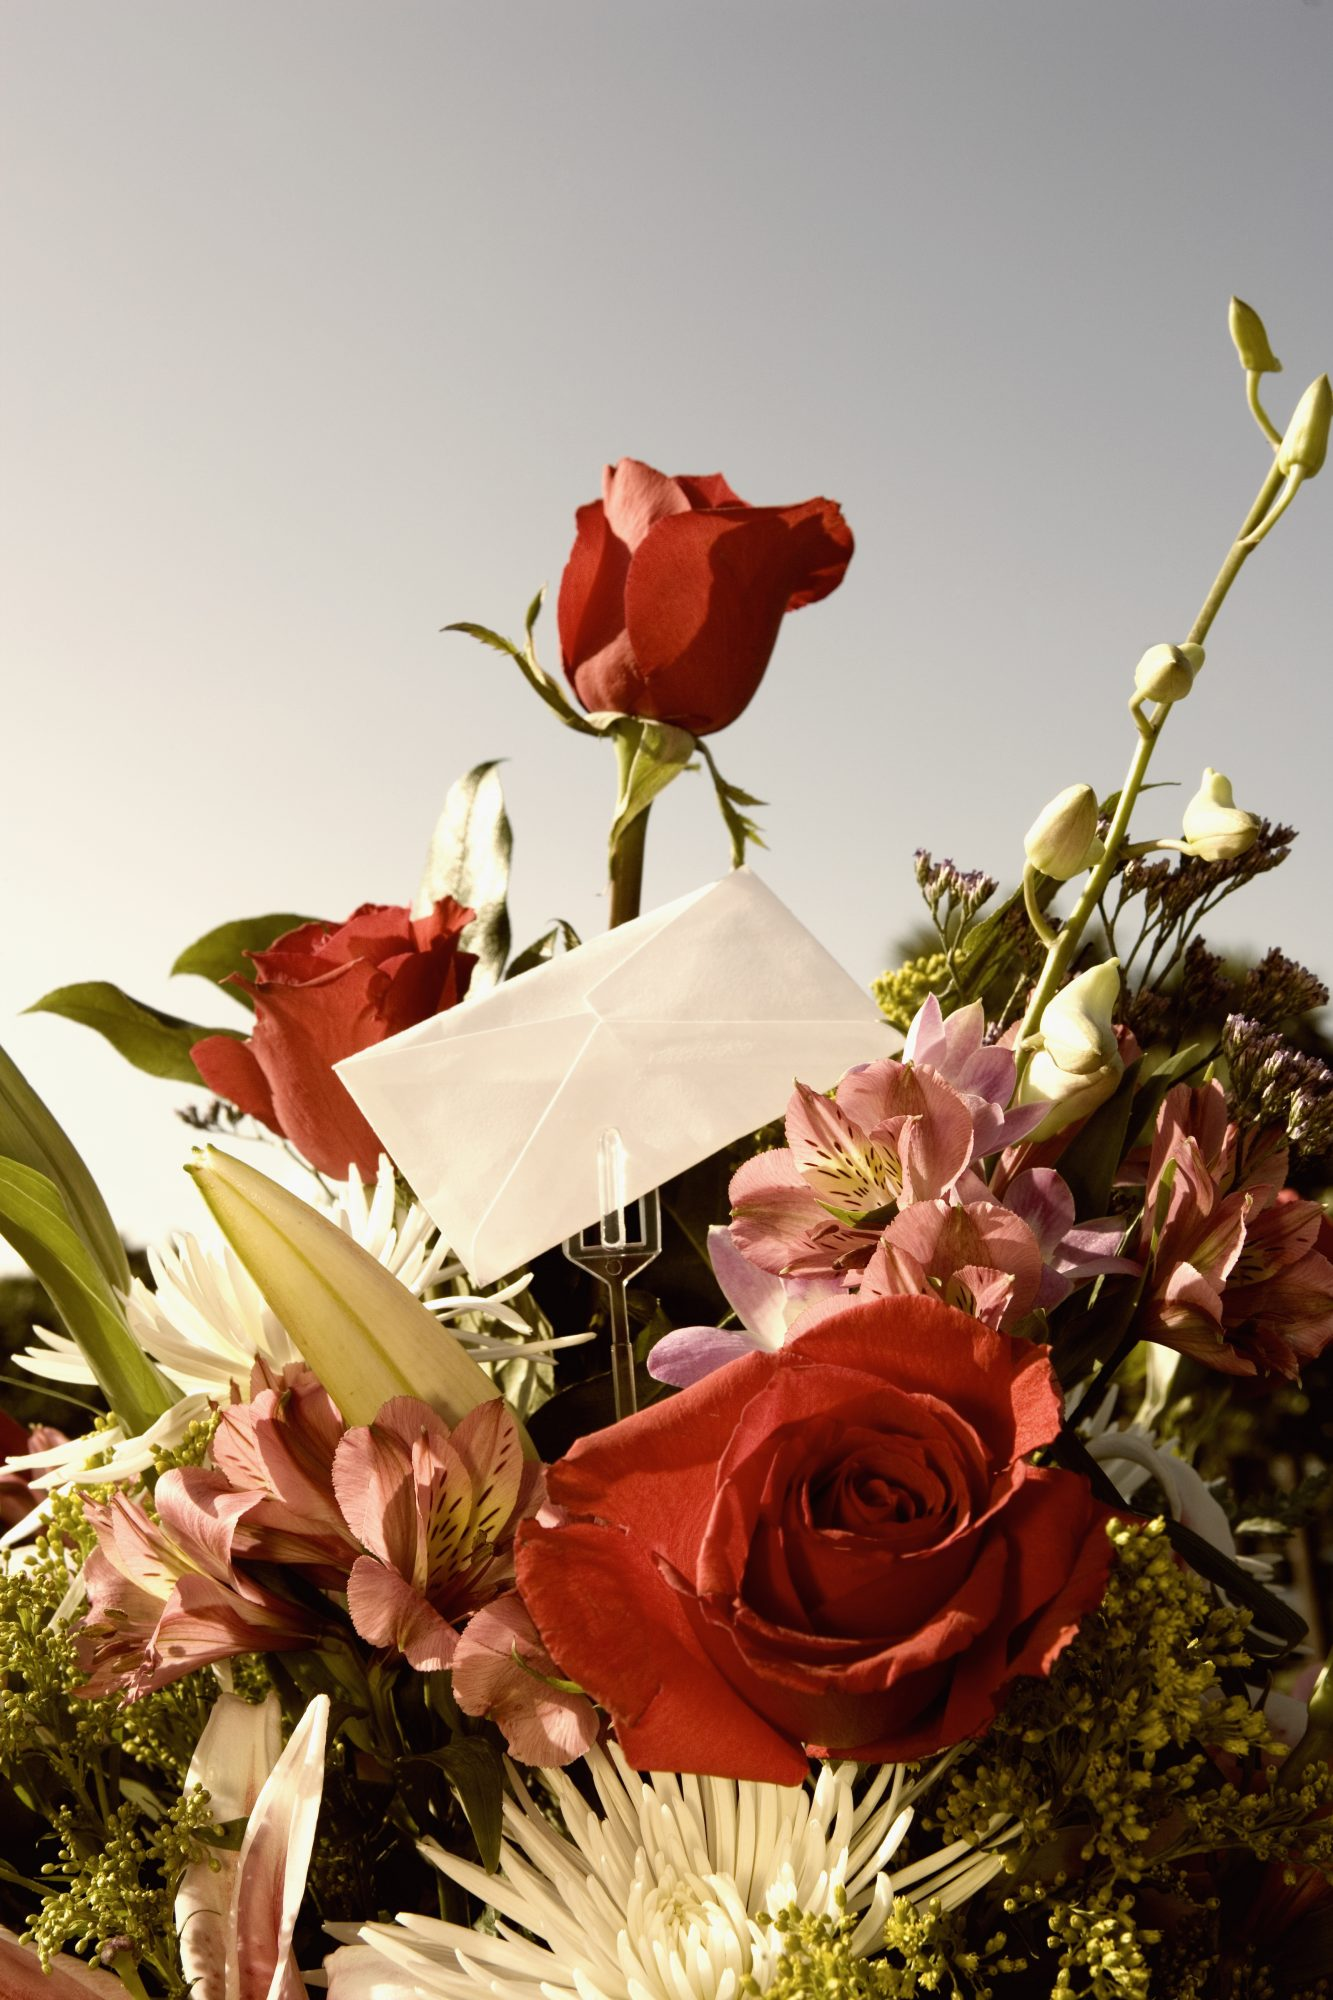 115 Sympathy Messages for Cards or Flowers - Southern Living